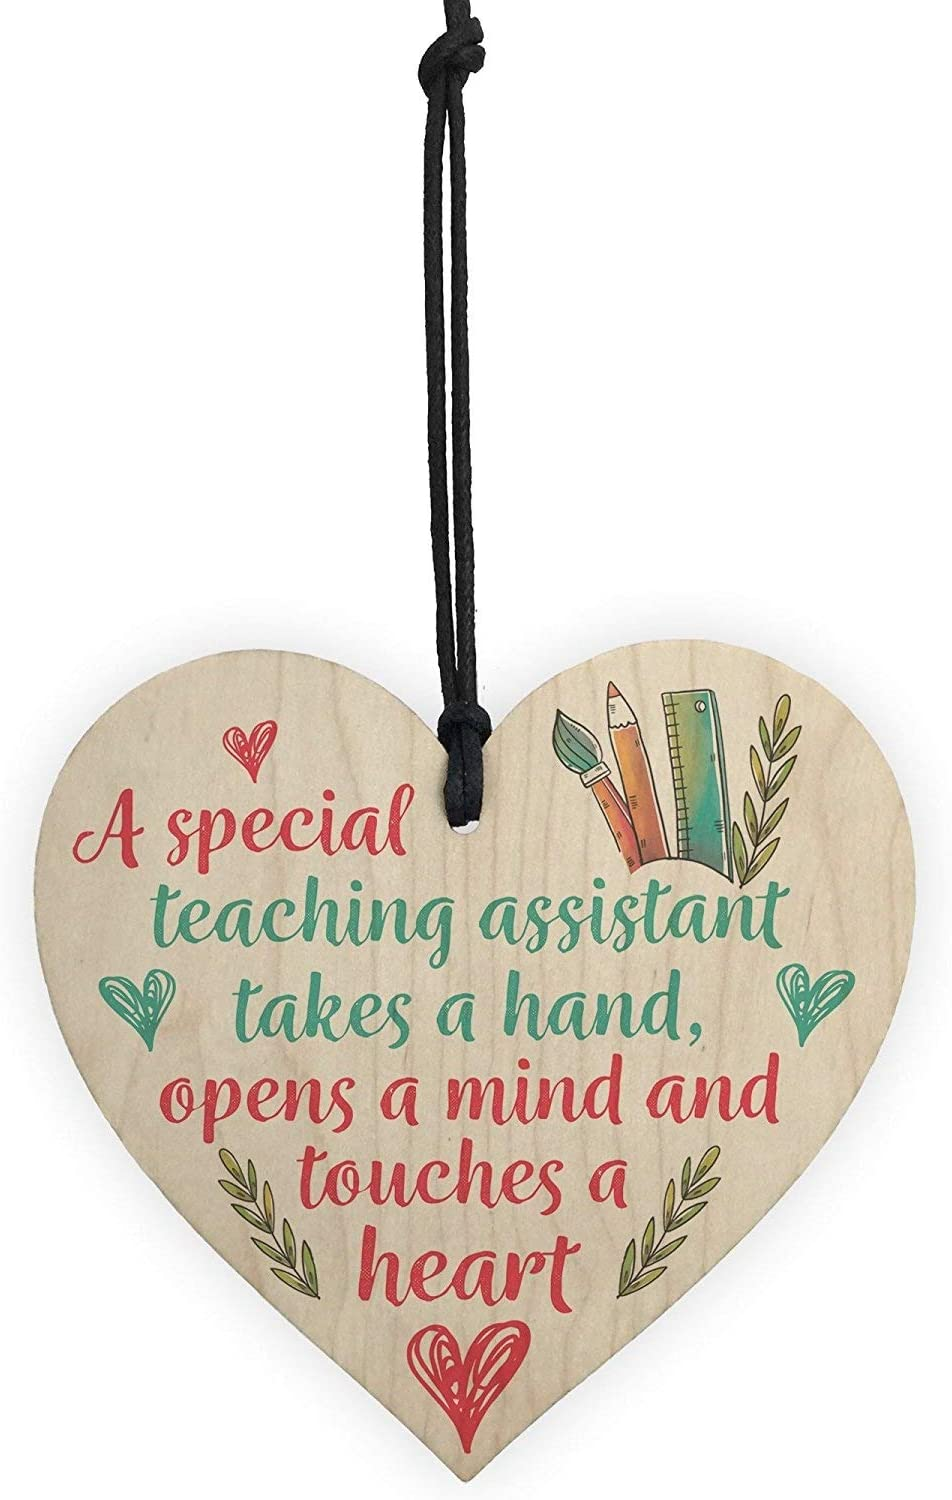 A nursery teacher takes hand opens a mind touches a heart Thank you plaque sign